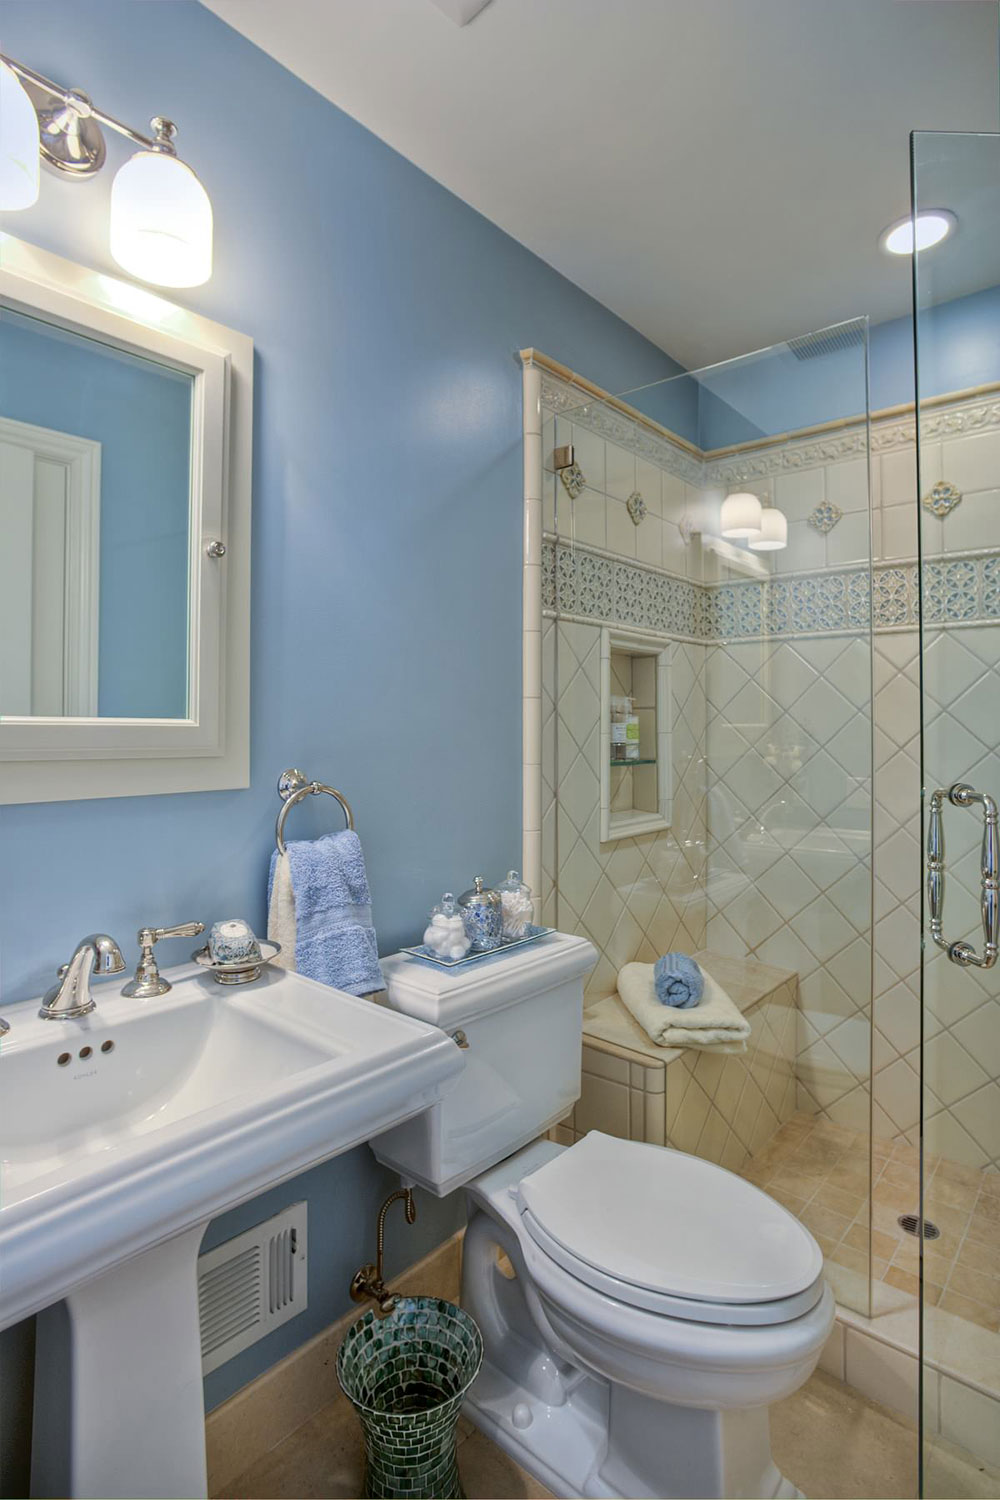 Best Small Bathroom Designs How To Make A Small Bathroom Look Bigger Tips And Ideas